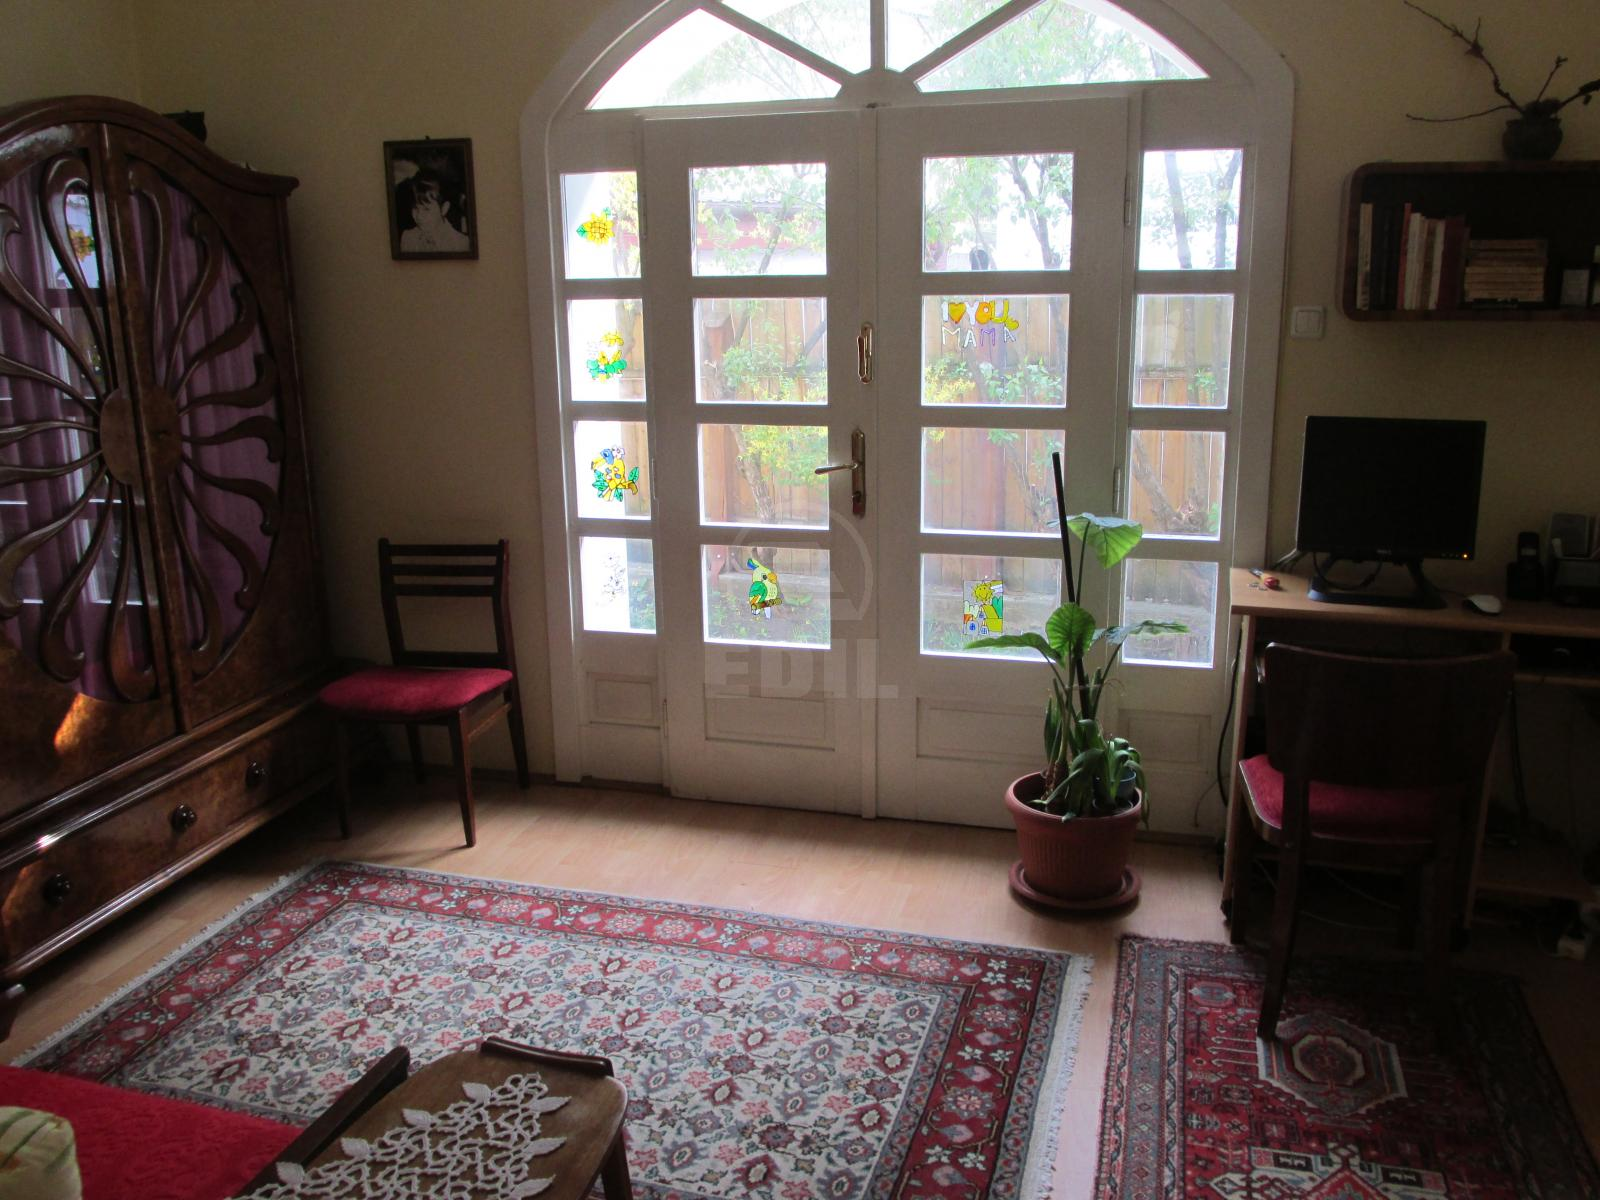 House for sale 6 rooms, CACJ274470-25